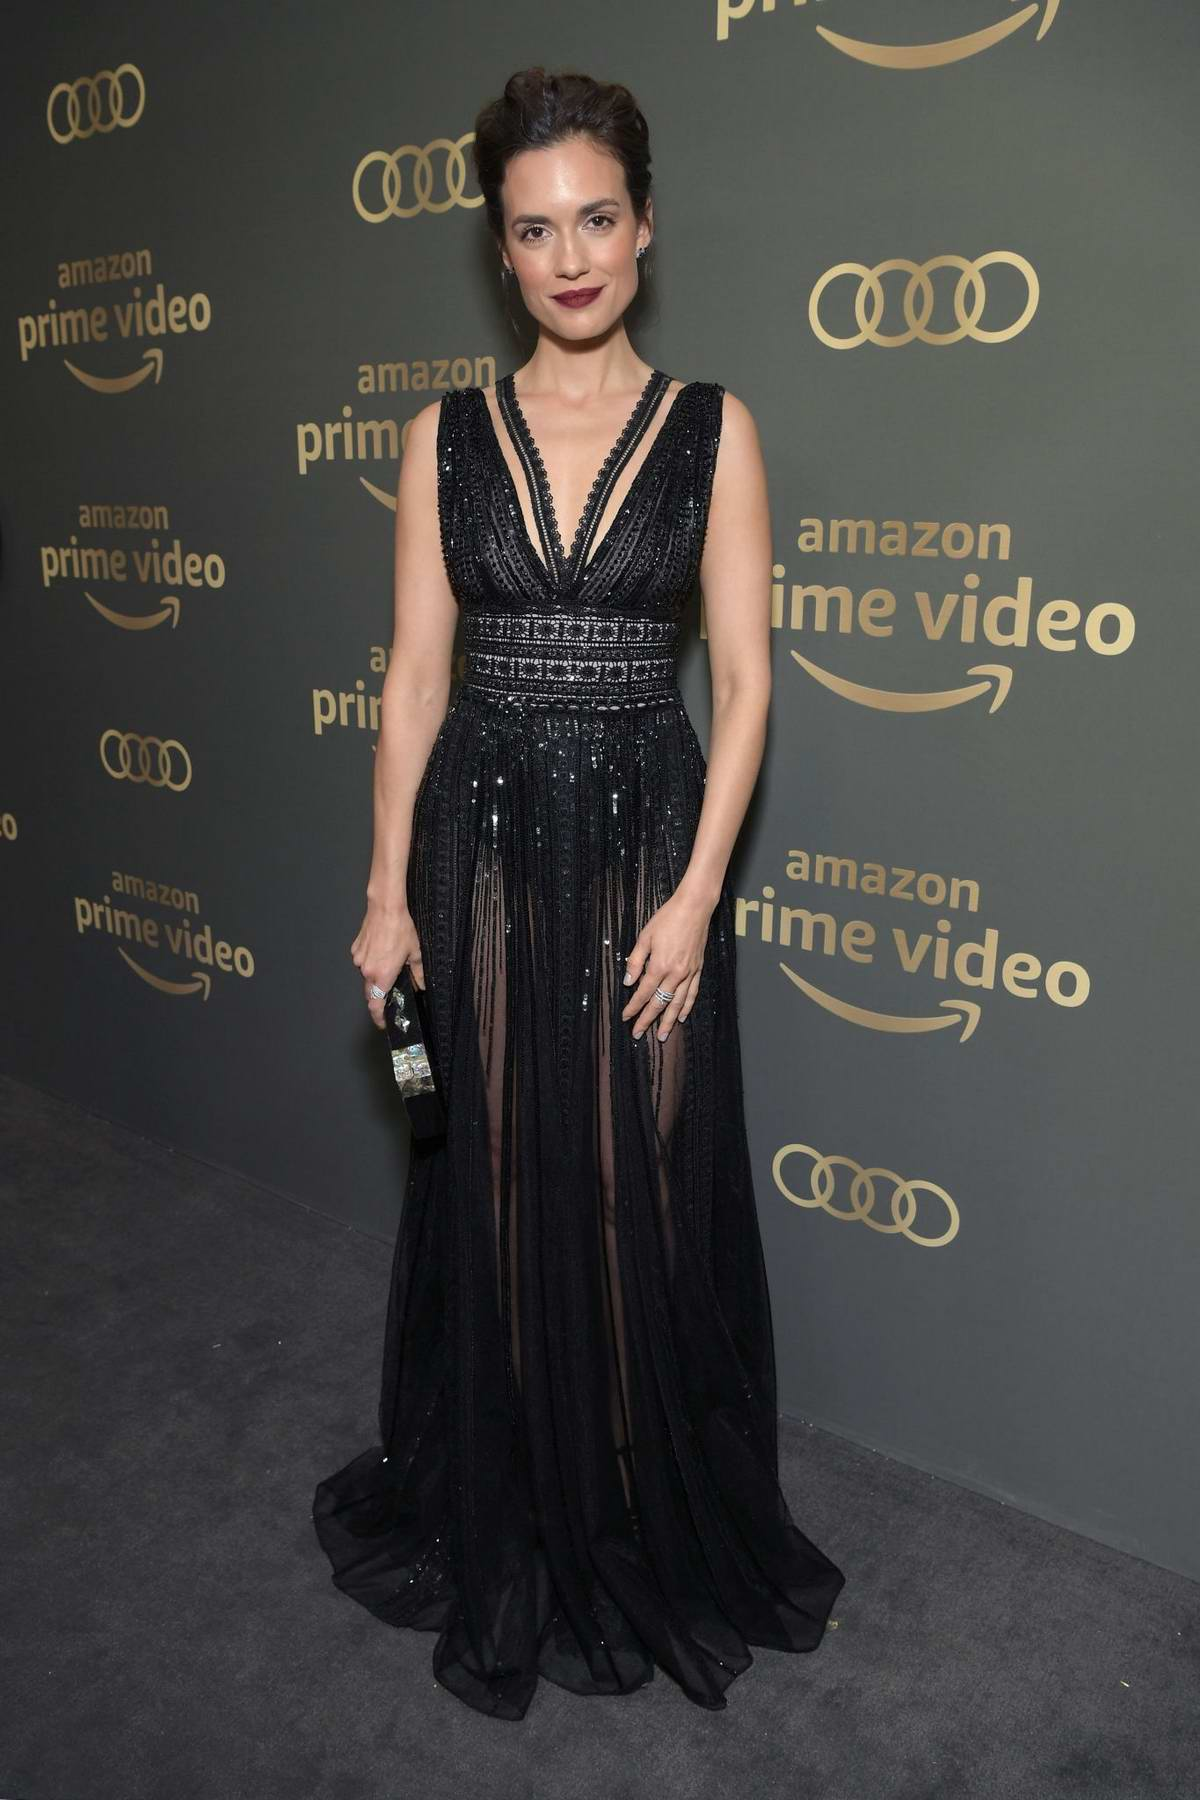 Torrey DeVitto attends the Amazon Prime Video's Golden Globe Awards After Party at the Beverly Hilton Hotel in Beverly Hills, California